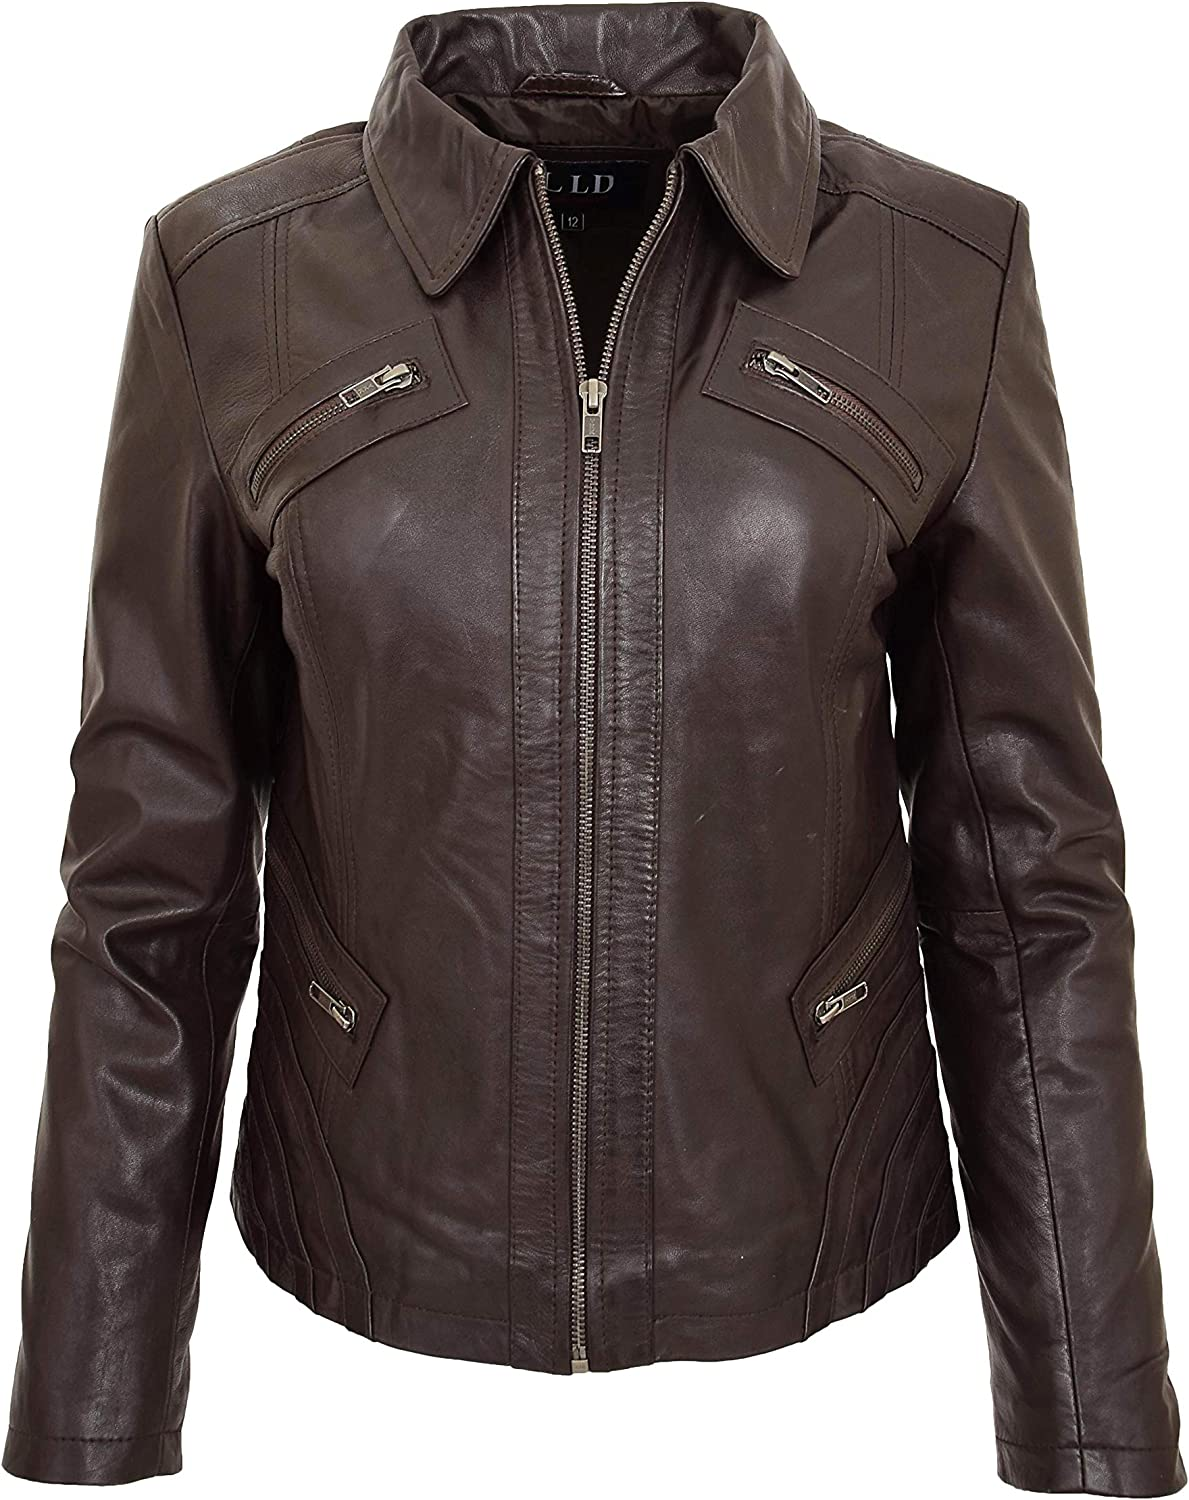 A1 FASHION GOODS Ladies Soft Brown Leather Jacket Fitted Collared Latest Zip Fasten Biker Style Leah